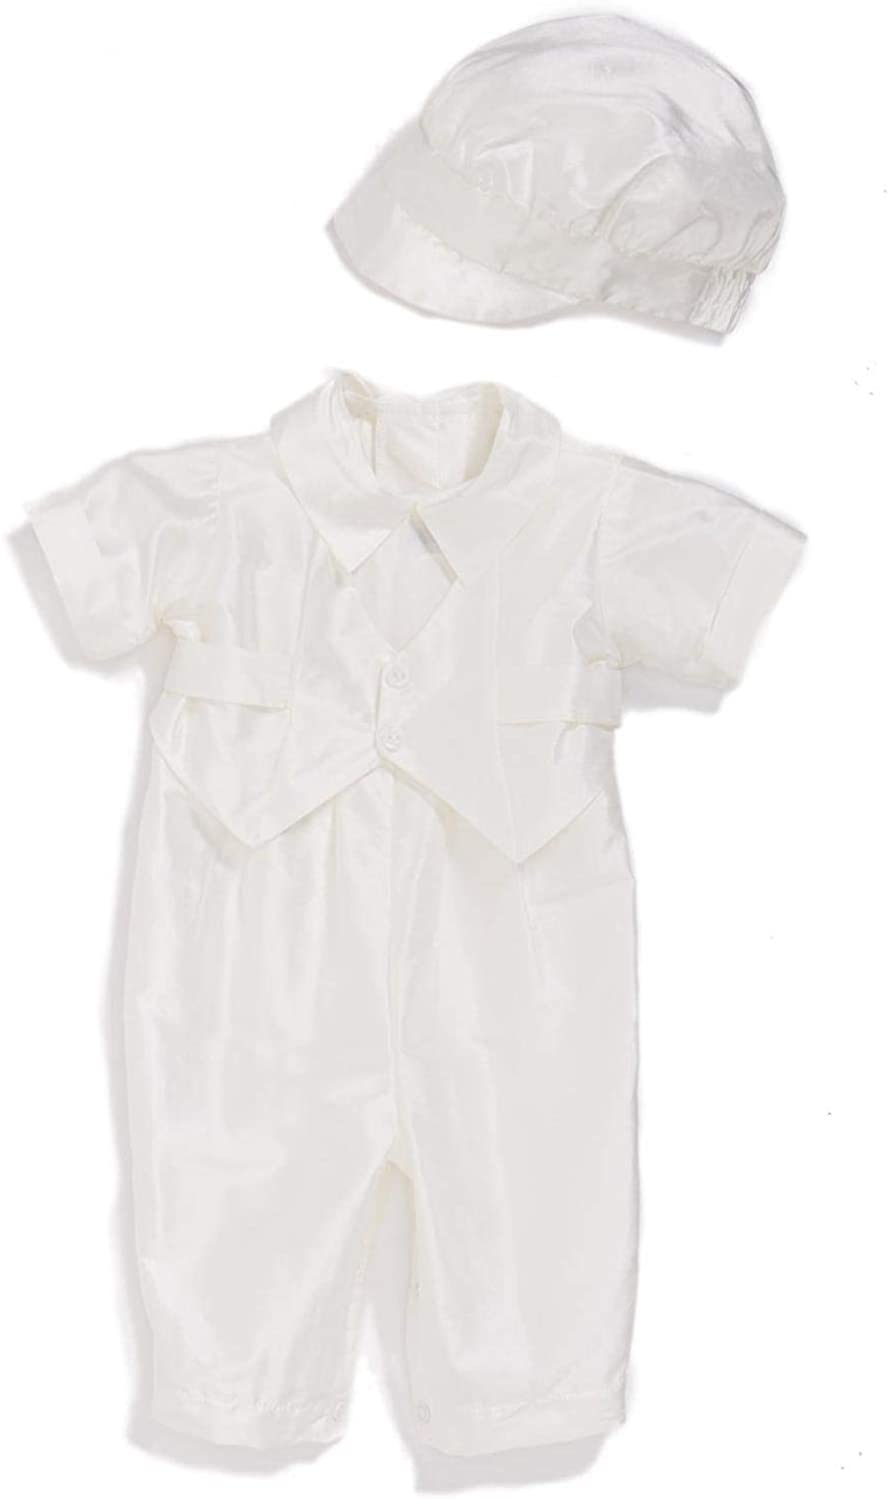 Faithclover Christening Baptism Outfit for Boys Newborn Taffeta Long Pants Suits Set with Hat